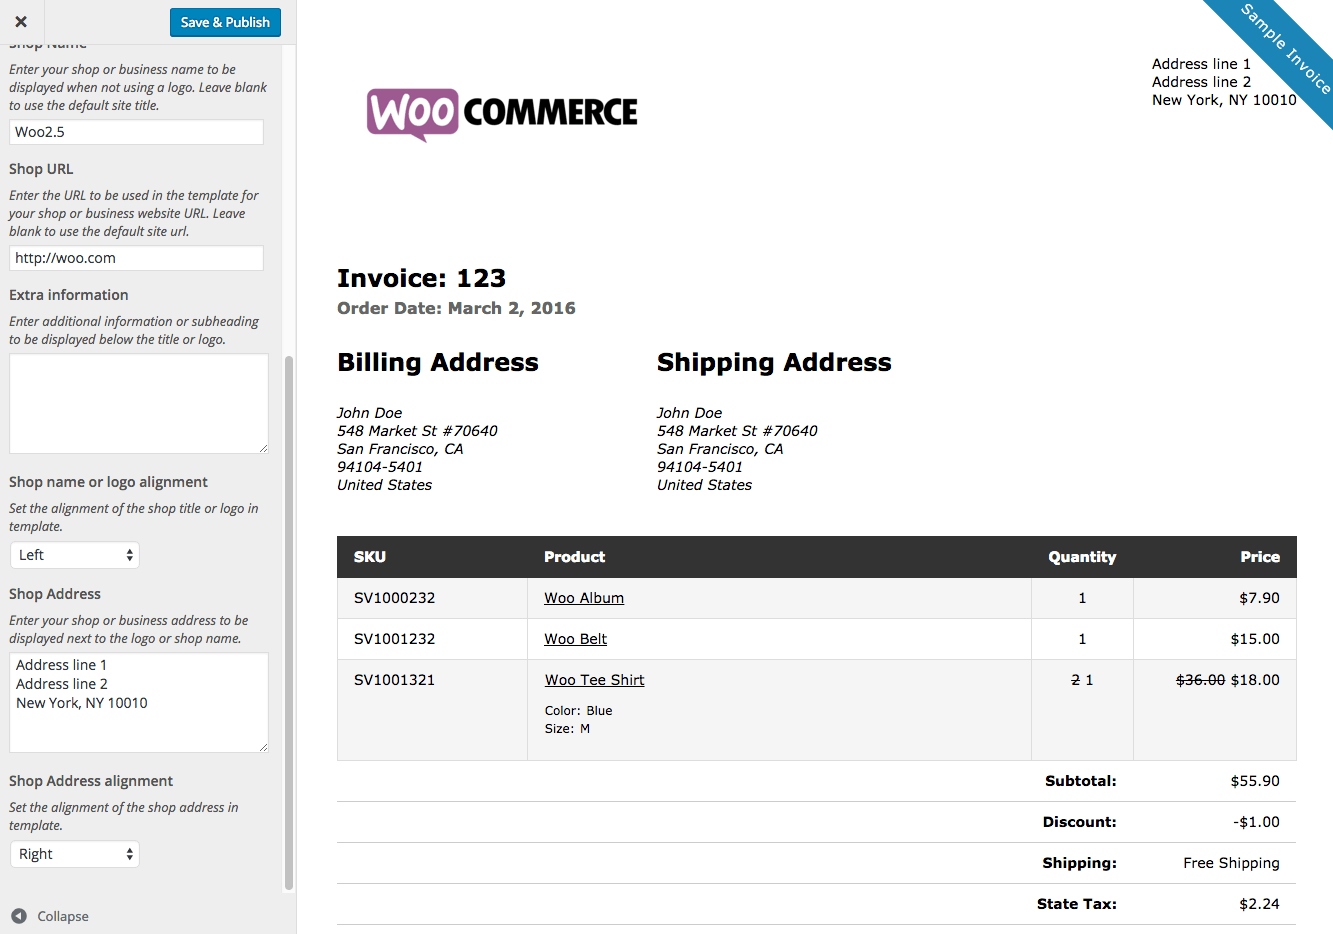 Ultrablogus  Surprising Print Invoices Amp Packing Lists  Woocommerce With Handsome Woocommerce Print Invoices  Packing Lists Customizer With Divine Concurrent Receipt Legislation Also Receipt Maker Machine In Addition Service Receipt Template Word And Child Support Receipting Unit Nashville Tn As Well As Blank Receipt Form Printable Additionally Make A Receipt Free From Woocommercecom With Ultrablogus  Handsome Print Invoices Amp Packing Lists  Woocommerce With Divine Woocommerce Print Invoices  Packing Lists Customizer And Surprising Concurrent Receipt Legislation Also Receipt Maker Machine In Addition Service Receipt Template Word From Woocommercecom